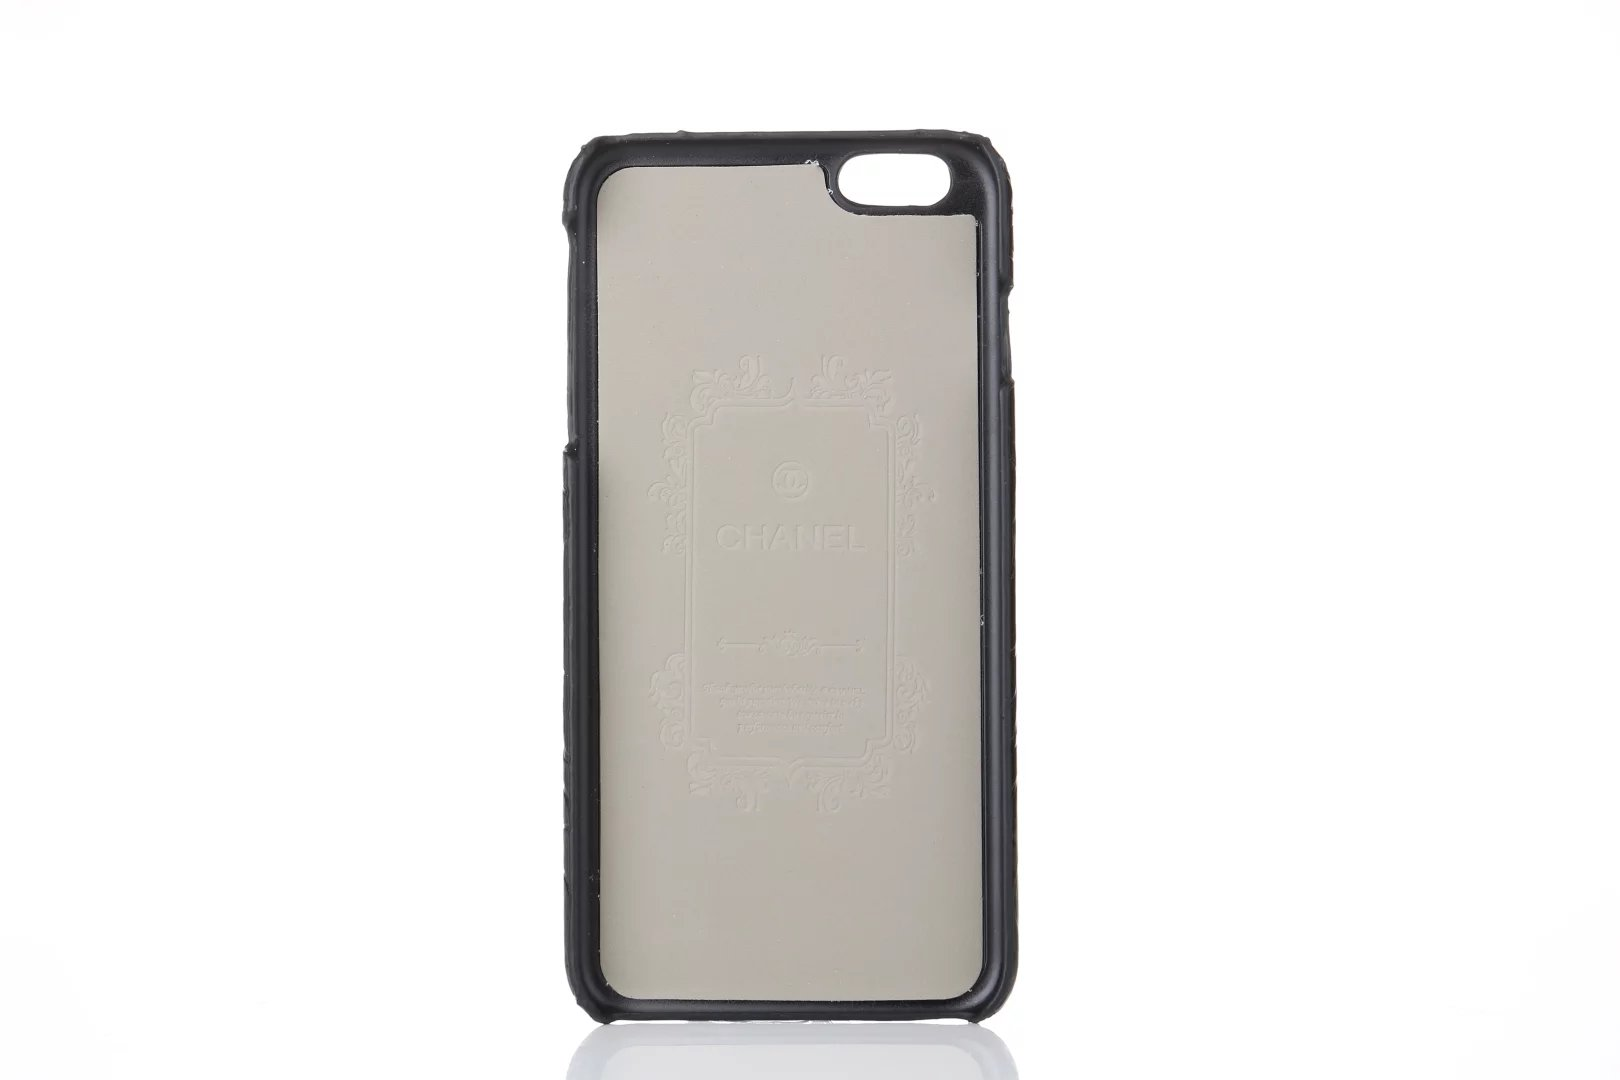 7 s iphone cases new cases for iphone 7 fashion iphone7 case apple iphone case ipod 7 cases phone case accessories cases for the iphone 7 case accessories iphone premium cases